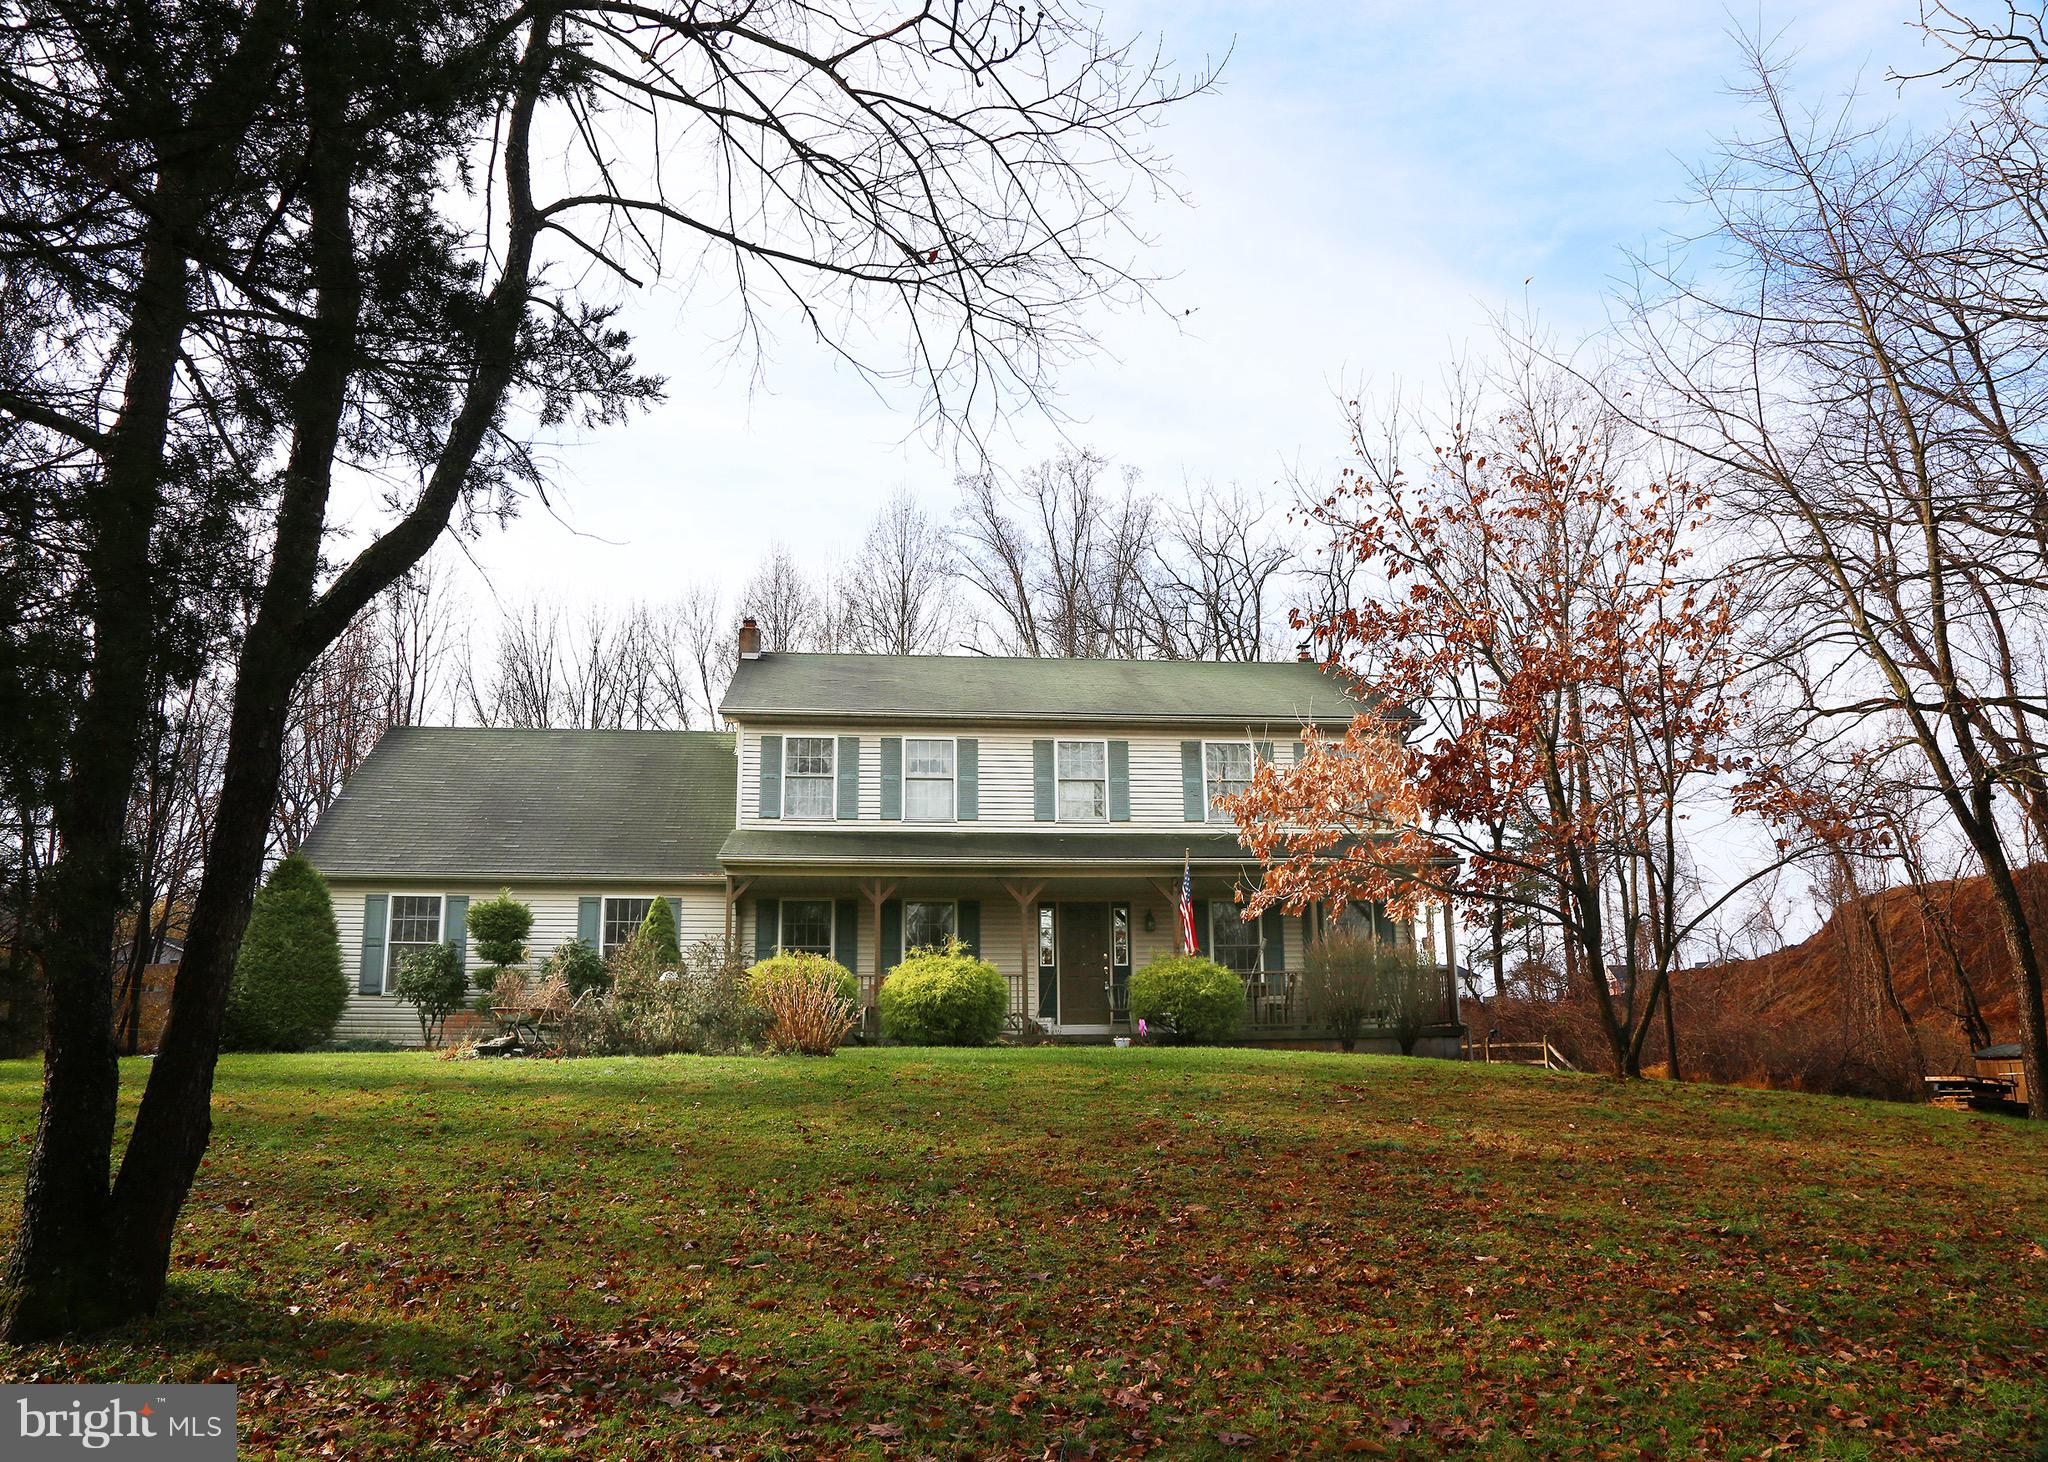 1743 STATION AVENUE, CENTER VALLEY, PA 18034